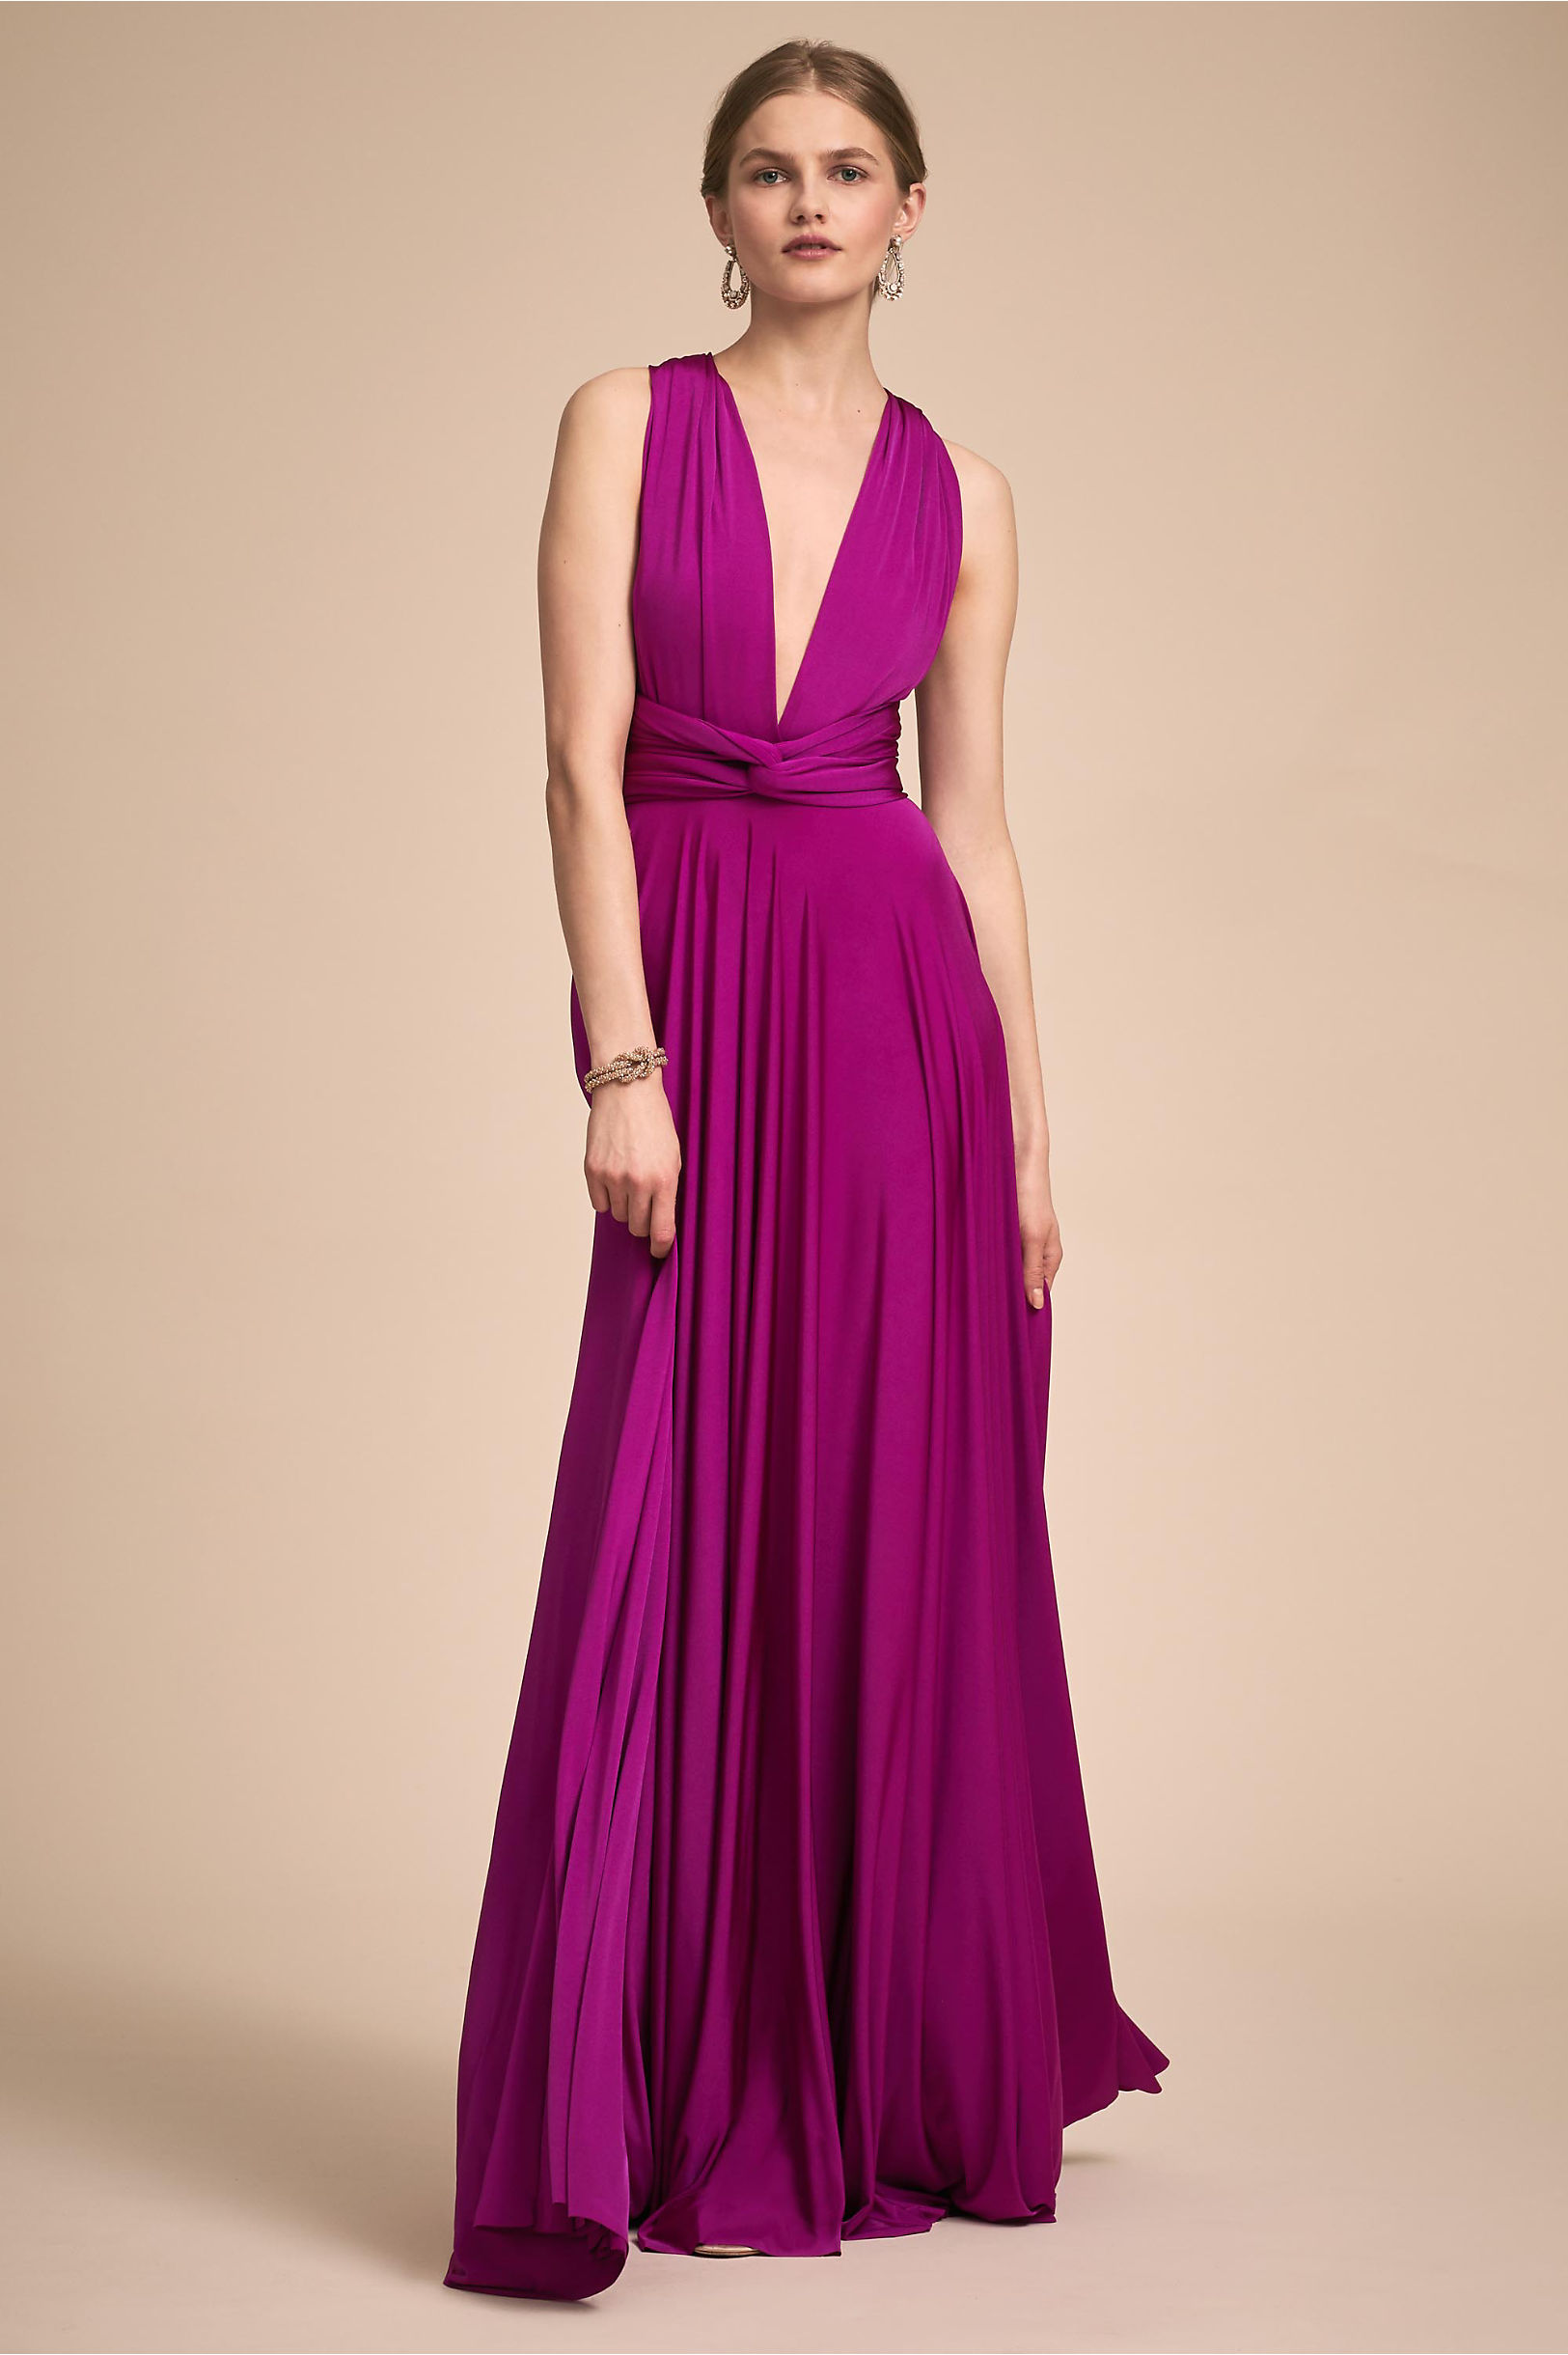 Ginger Convertible Maxi Dress in Sale | BHLDN